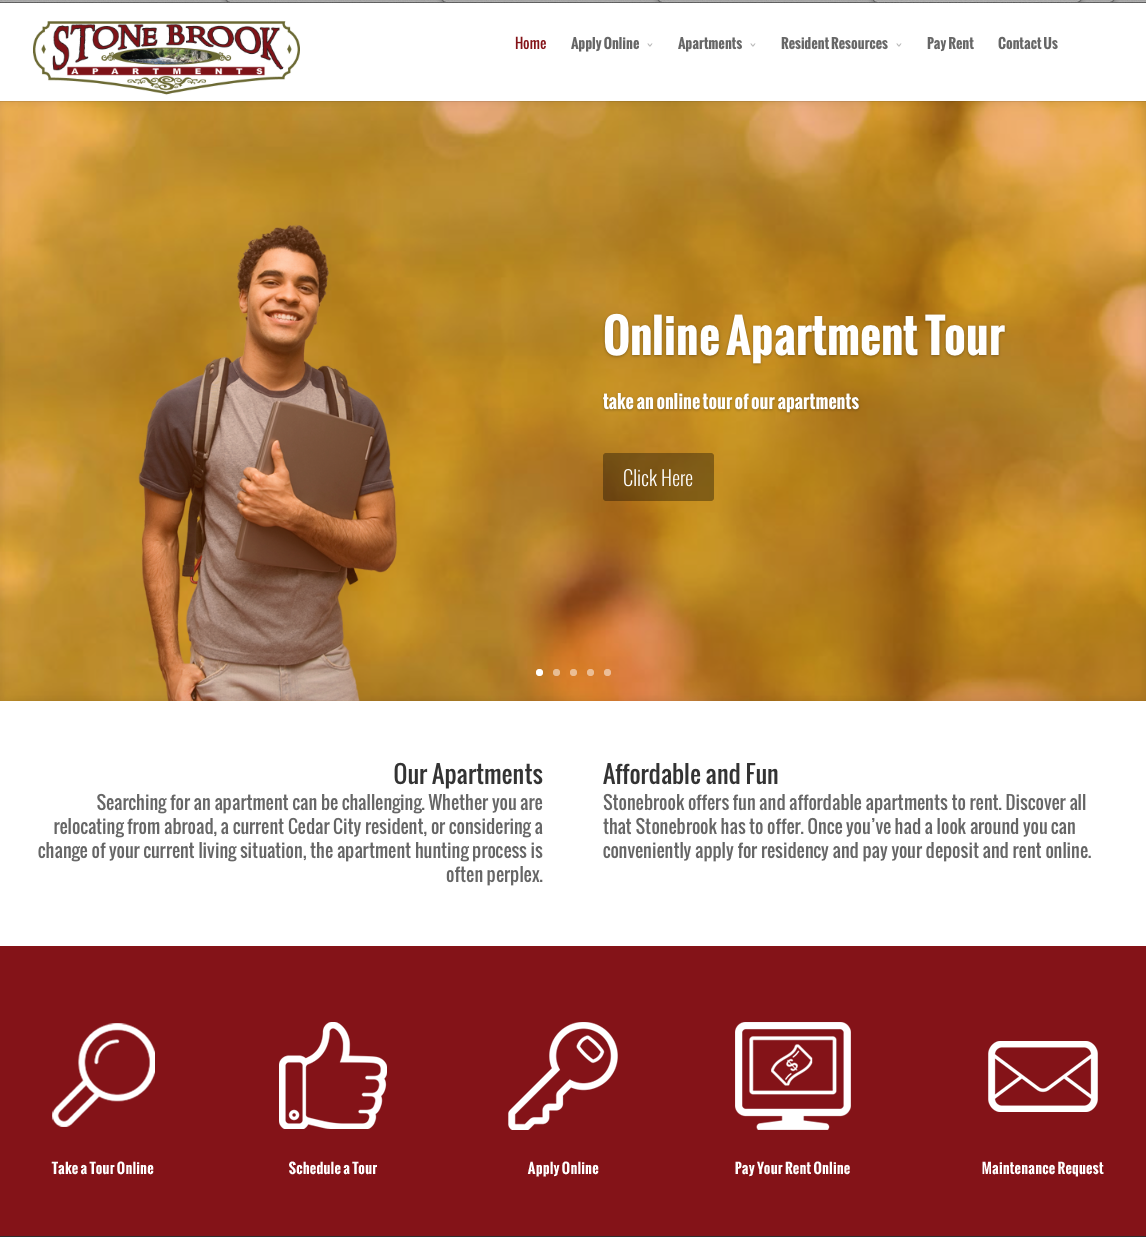 Stone Brook SUU Home Page